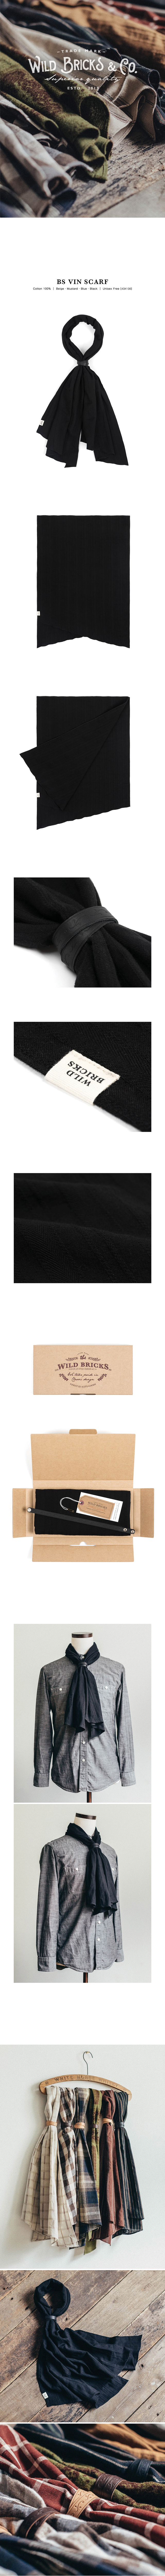 와일드 브릭스(WILD BRICKS) BS VIN SCARF  (black)